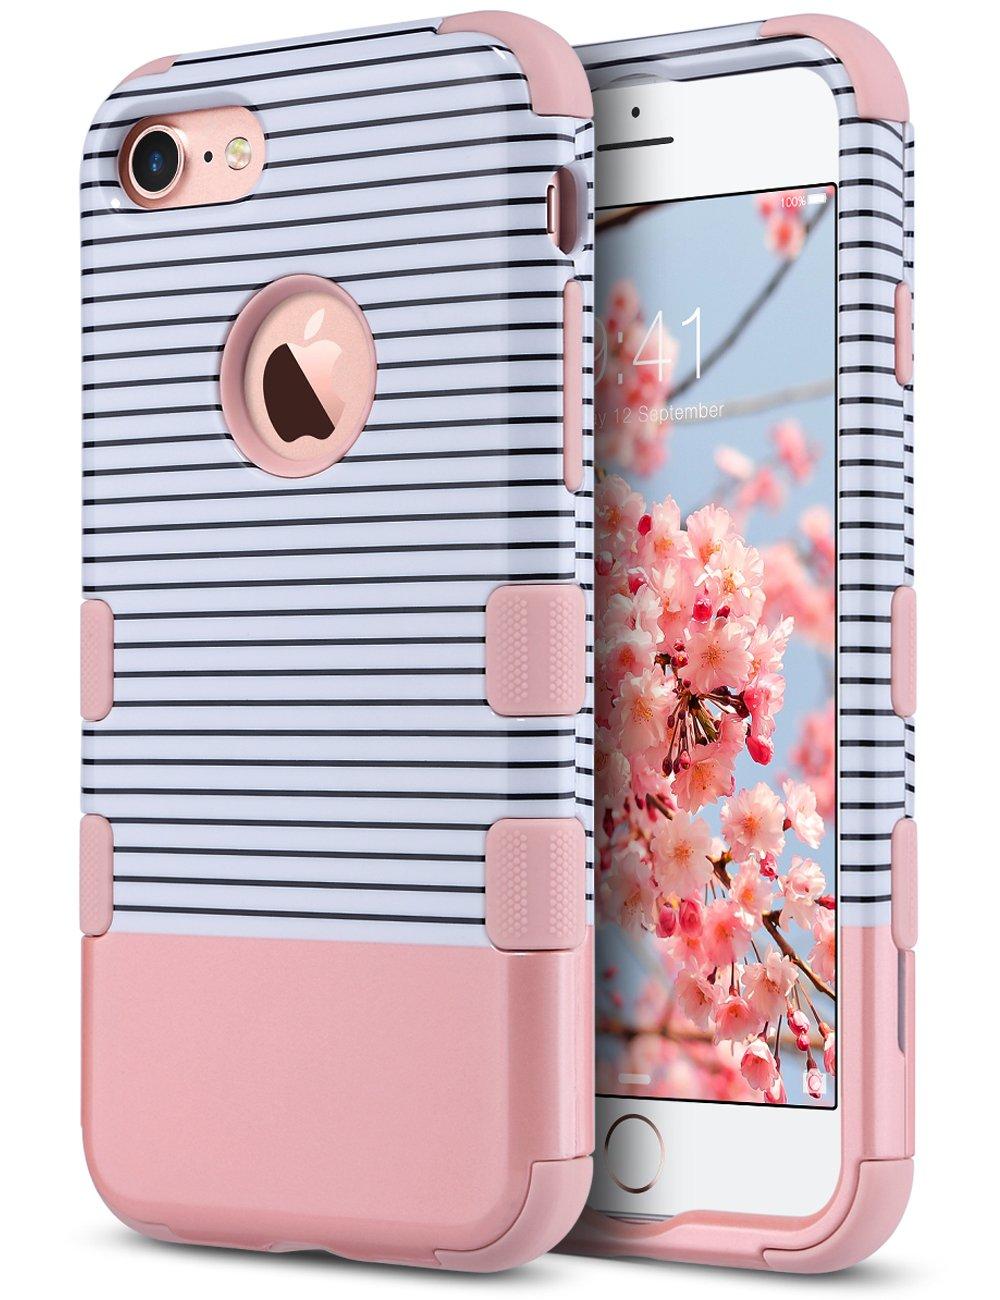 ULAK iPhone 7 Case, ANTI-SLIP Heavy Duty Protection Shockproof Soft Rubber & Silicone Dual Layer Protective Case for Apple iPhone 7 4.7 inch, Rose Gold Stripes